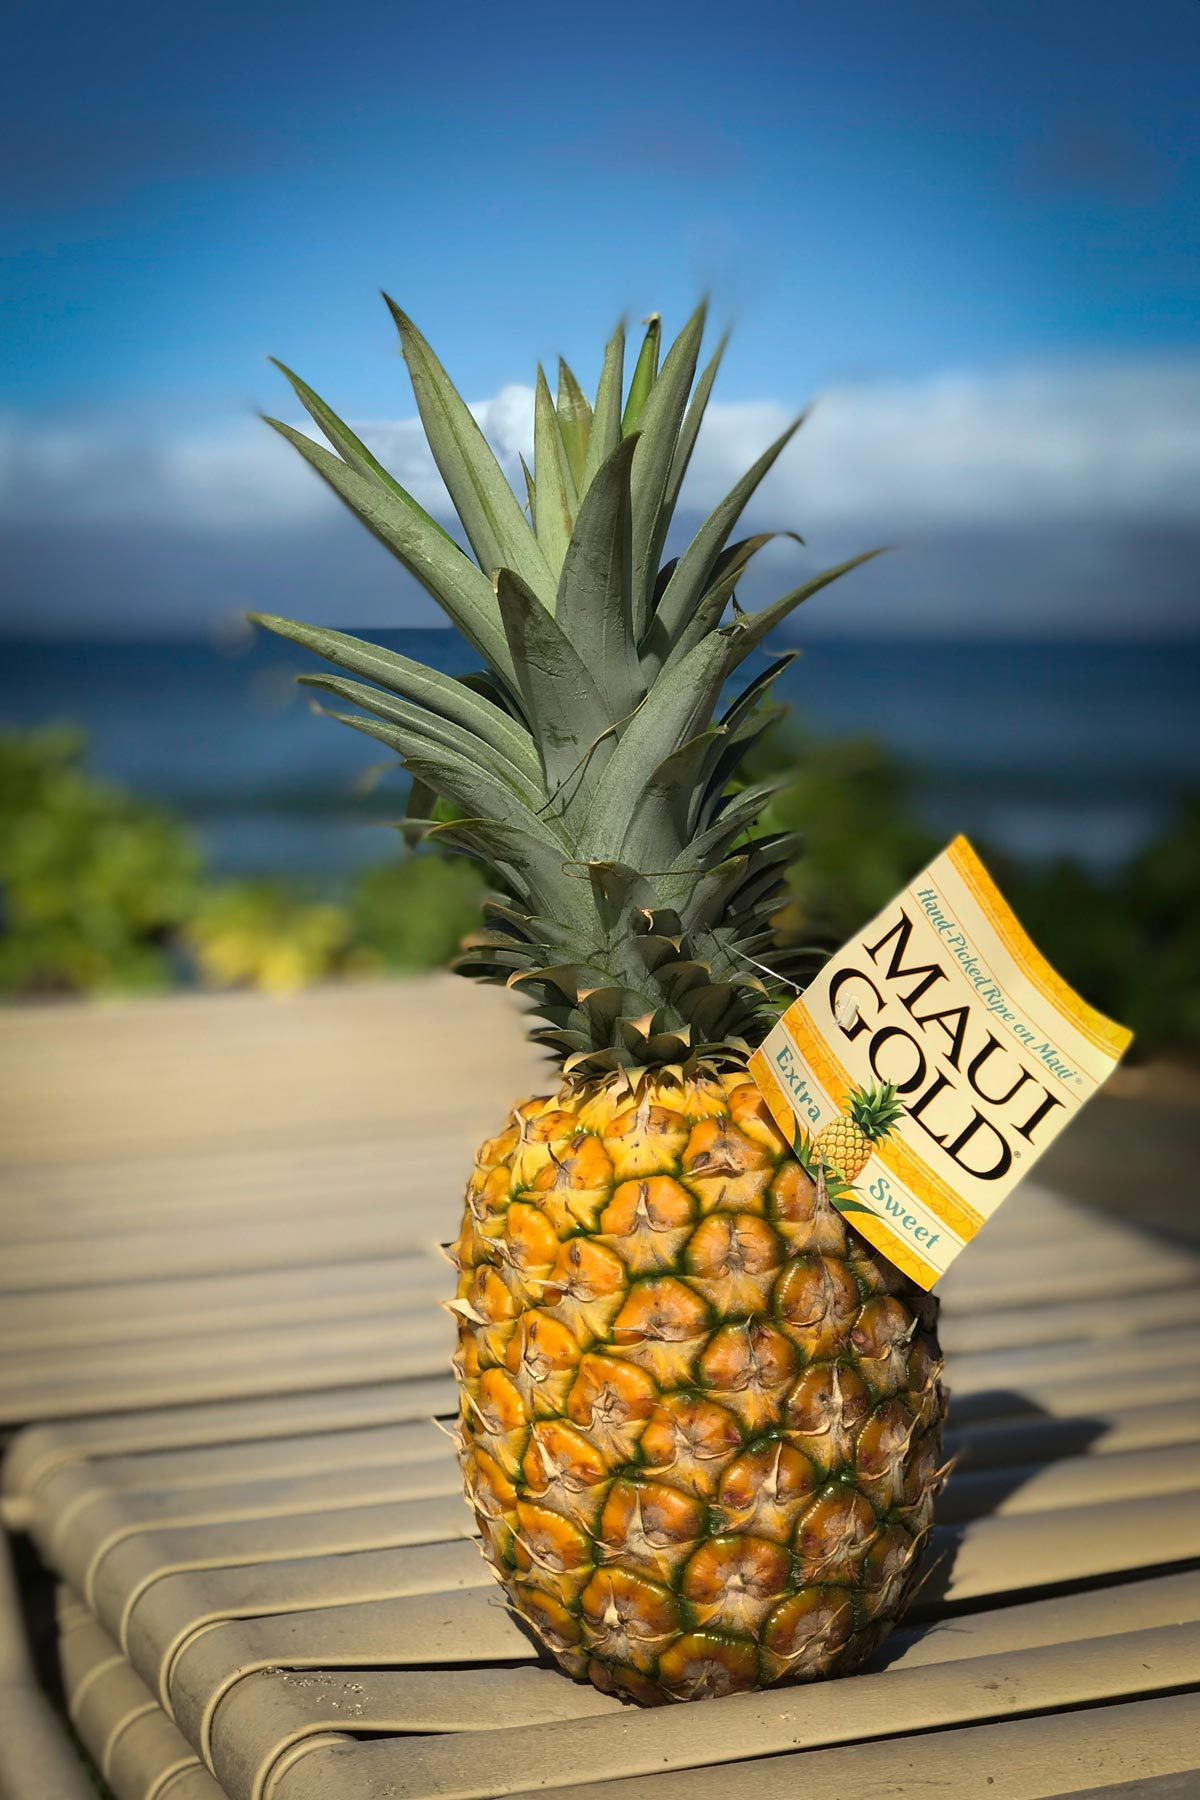 Maui Gold pineapple on lounge chair with ocean and Moloka'i in distance